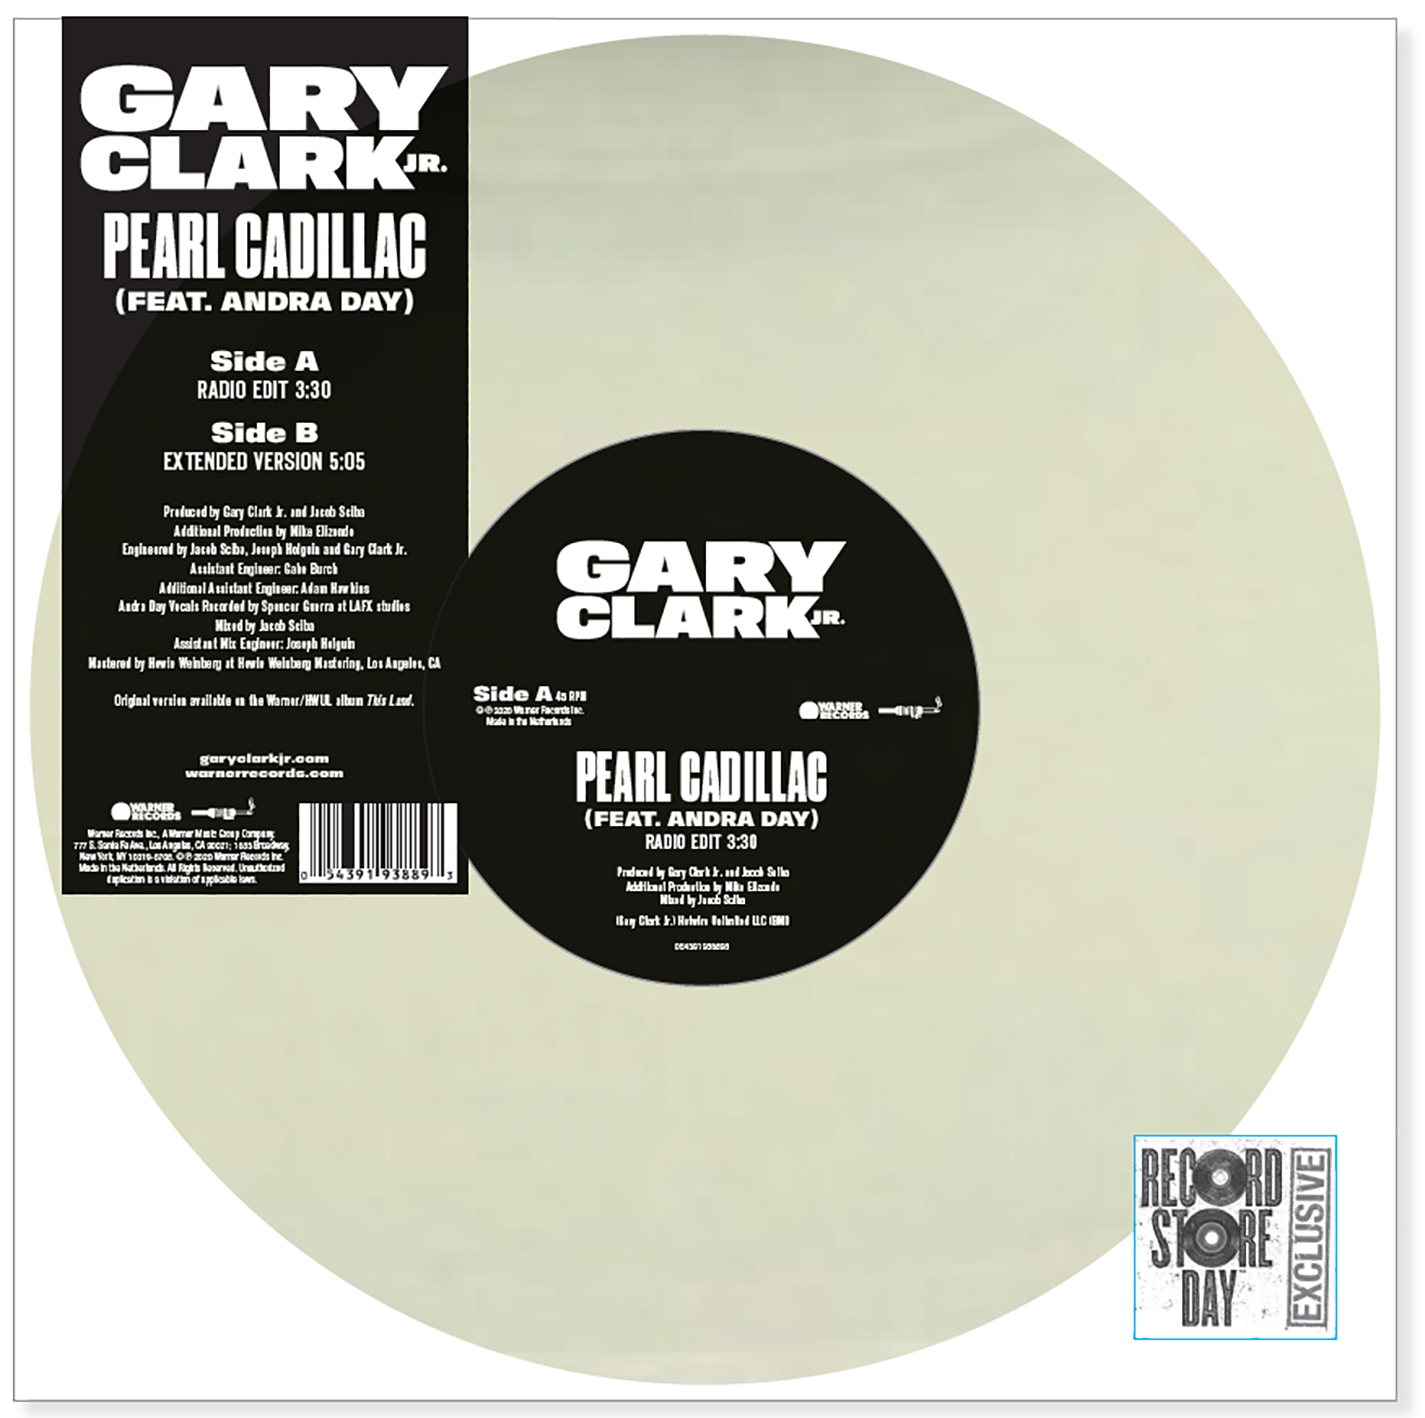 Gary Clark Jr. - Pearl Cadillac (Feat. Andra Day) [RSD Drops Aug 2020]